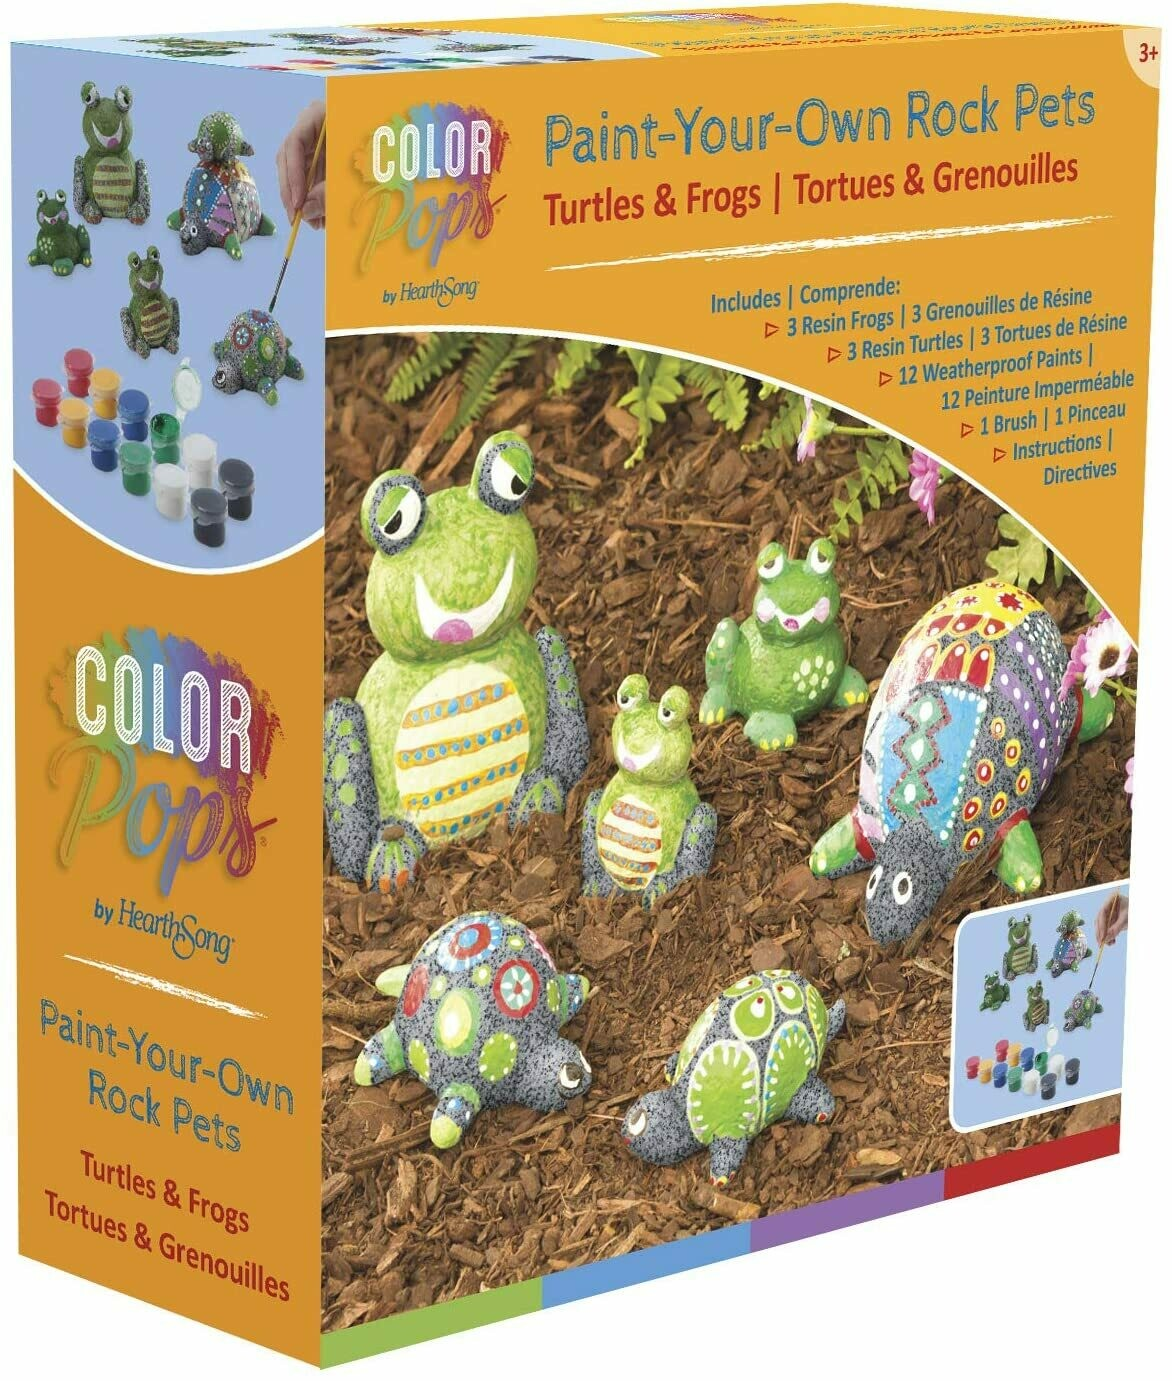 Paint-Your-Own Rocks, Creative Arts and Crafts Painting Kit for Kids